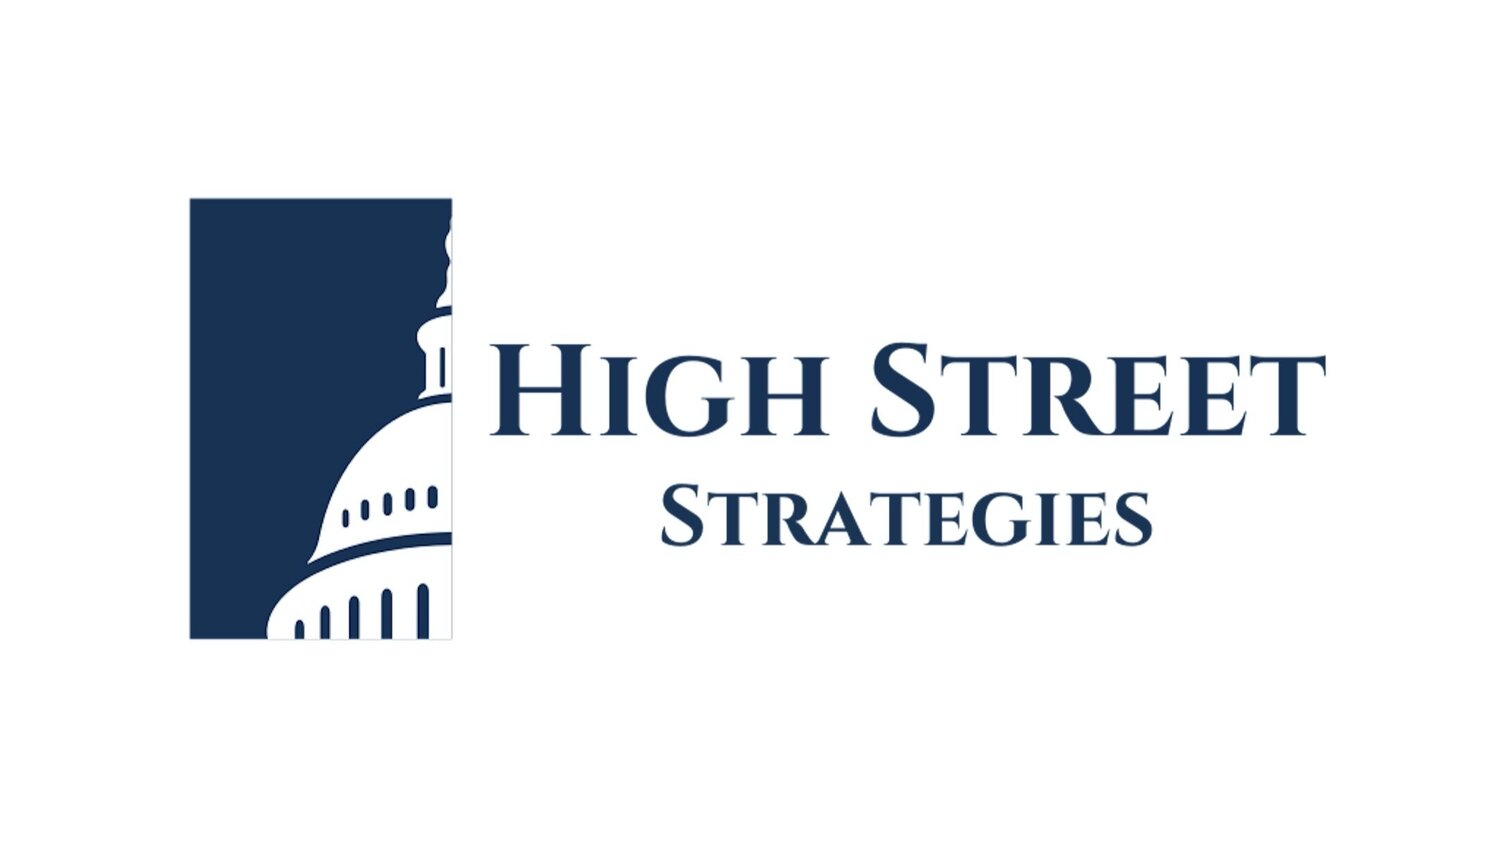 High Street Strategies